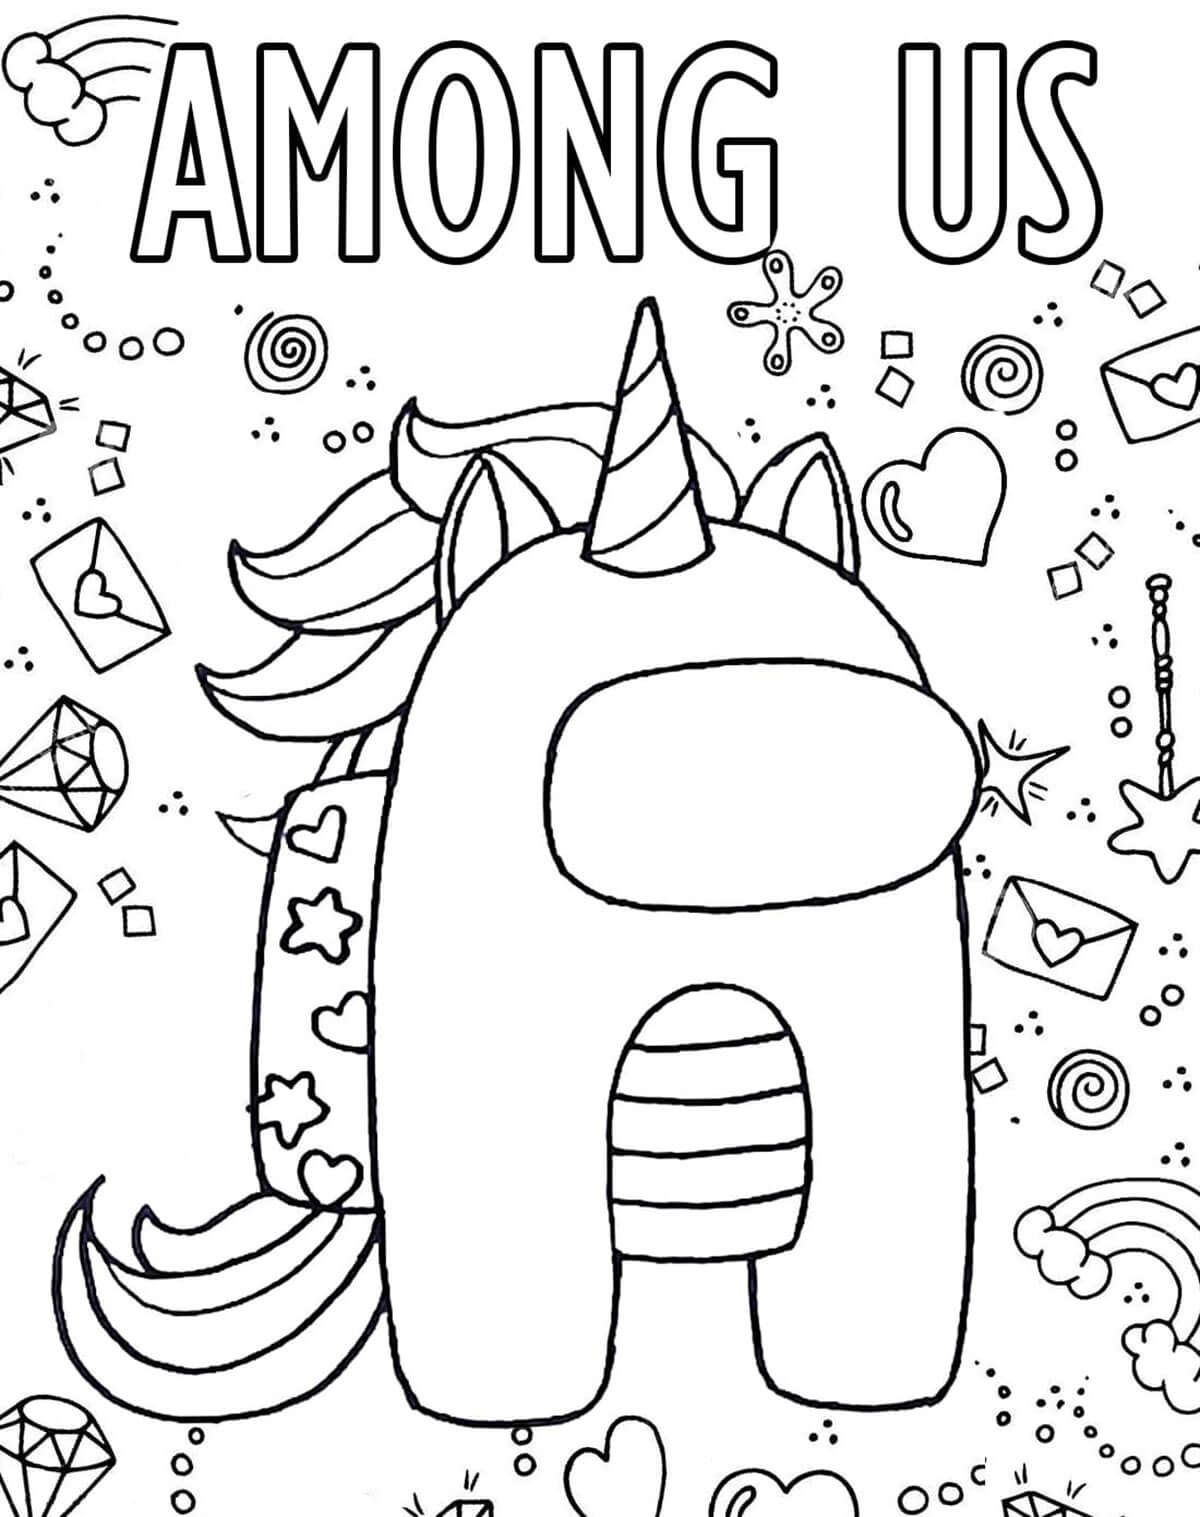 Simple Among Us Coloring Page Free Printable Coloring Pages For Kids Unicorn Coloring Pages Free Printable Coloring Pages Coloring Pages For Kids